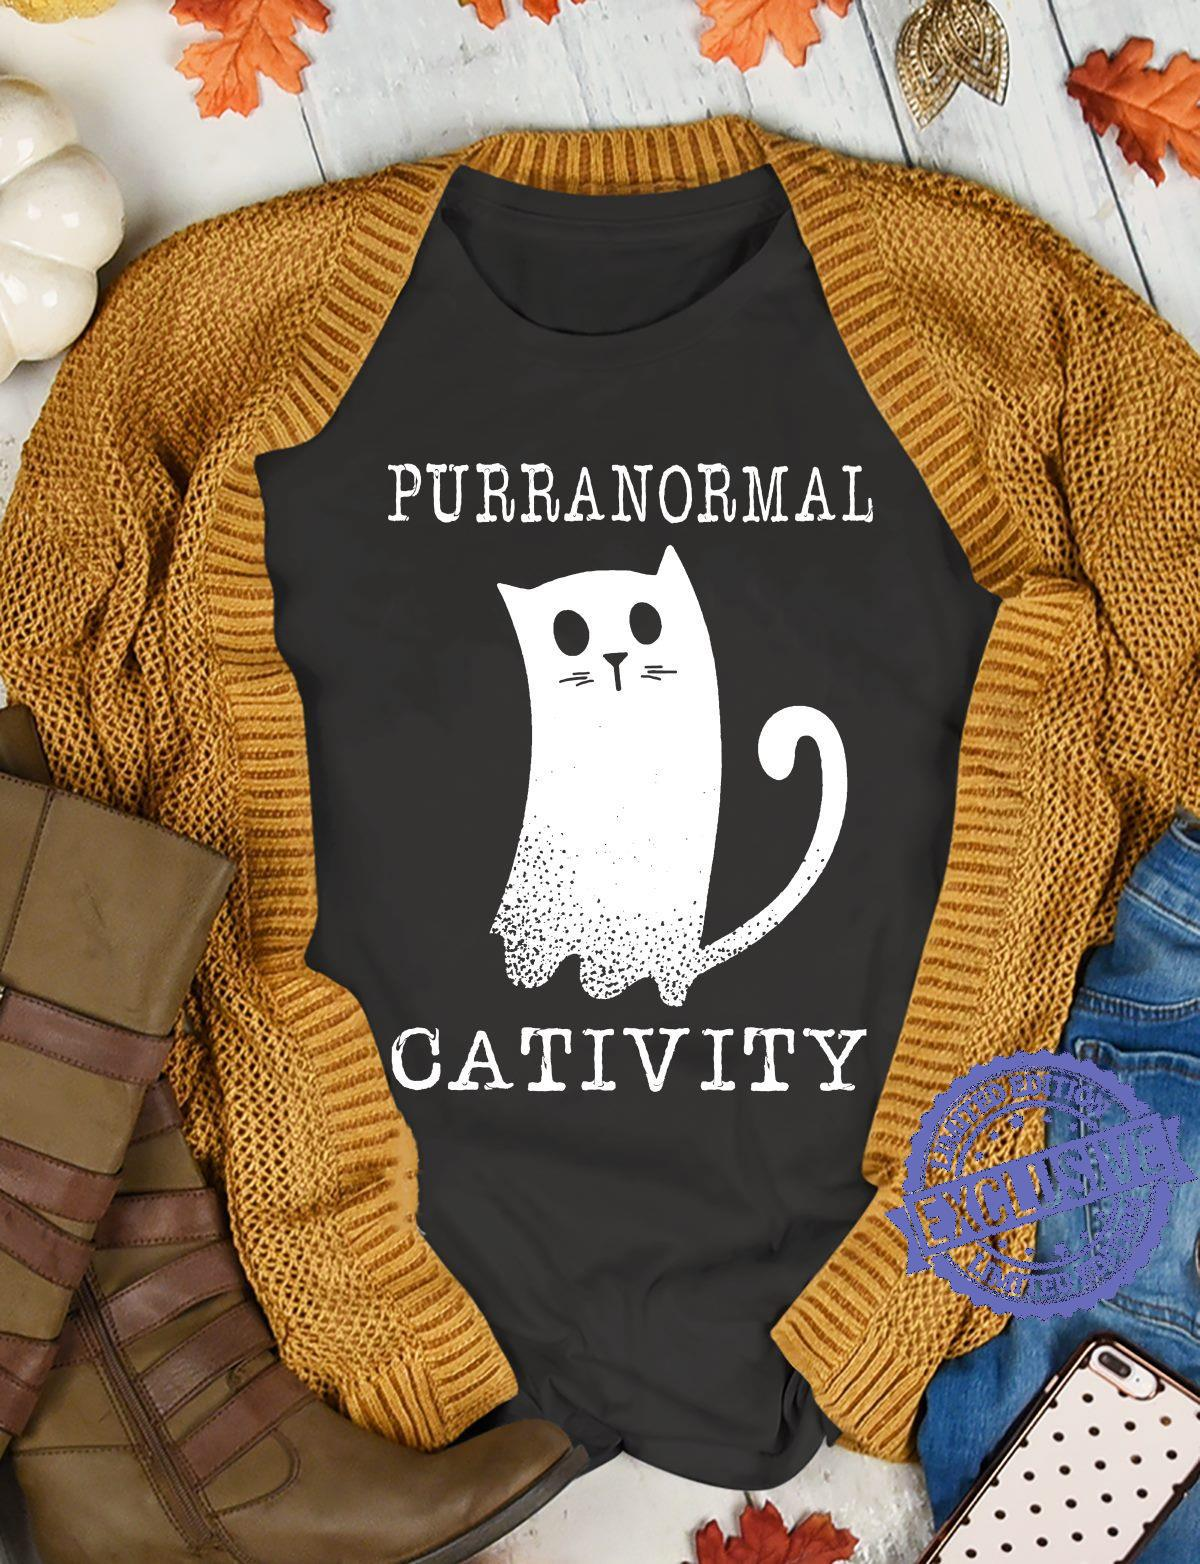 Purranormal cativity shirt